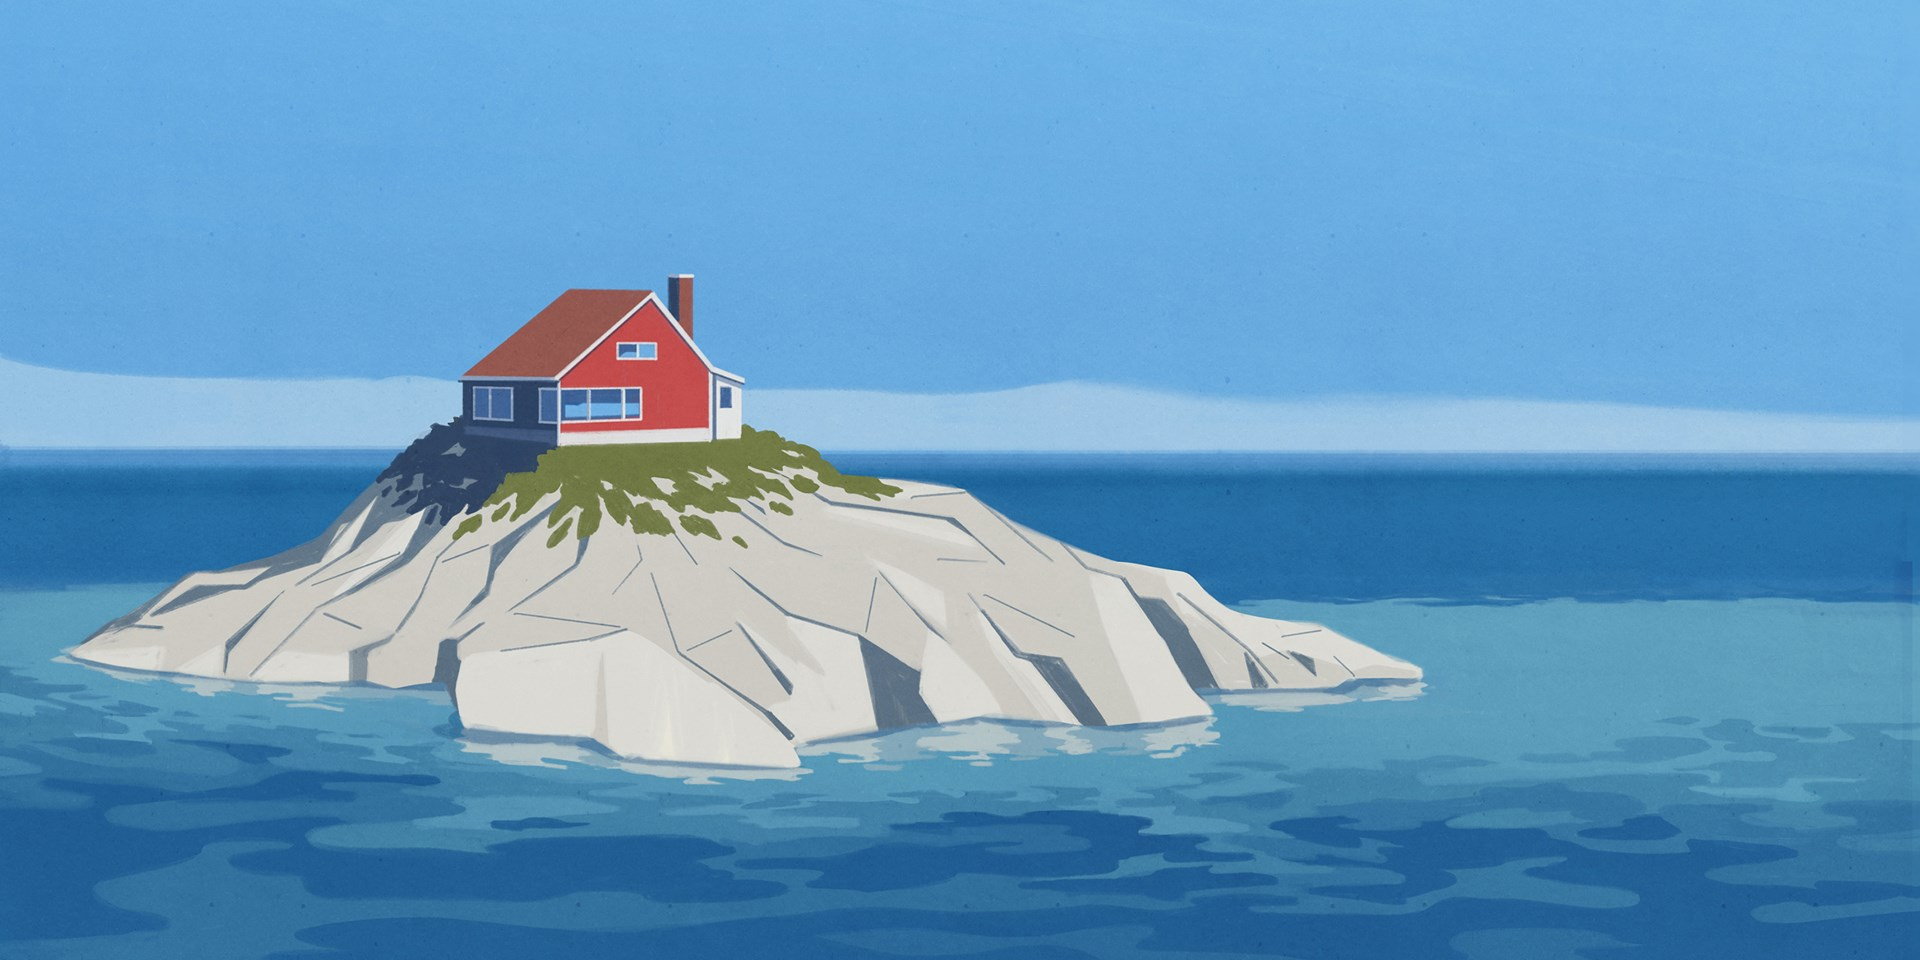 Illustration of a solitary red house on a rocky island surrounded by blue skies and blue water